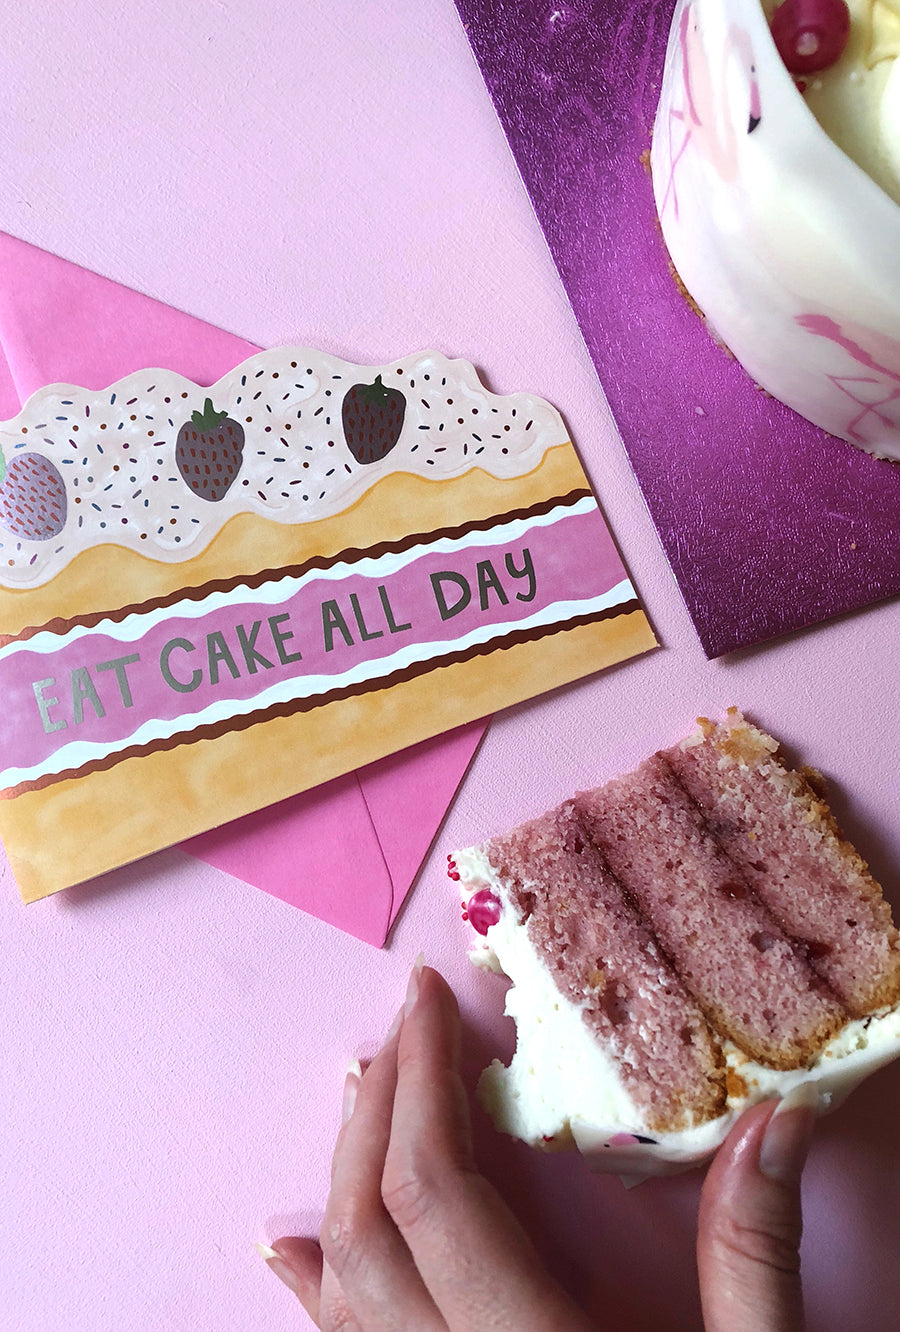 Eat Cake all Day Birthday Cake Card